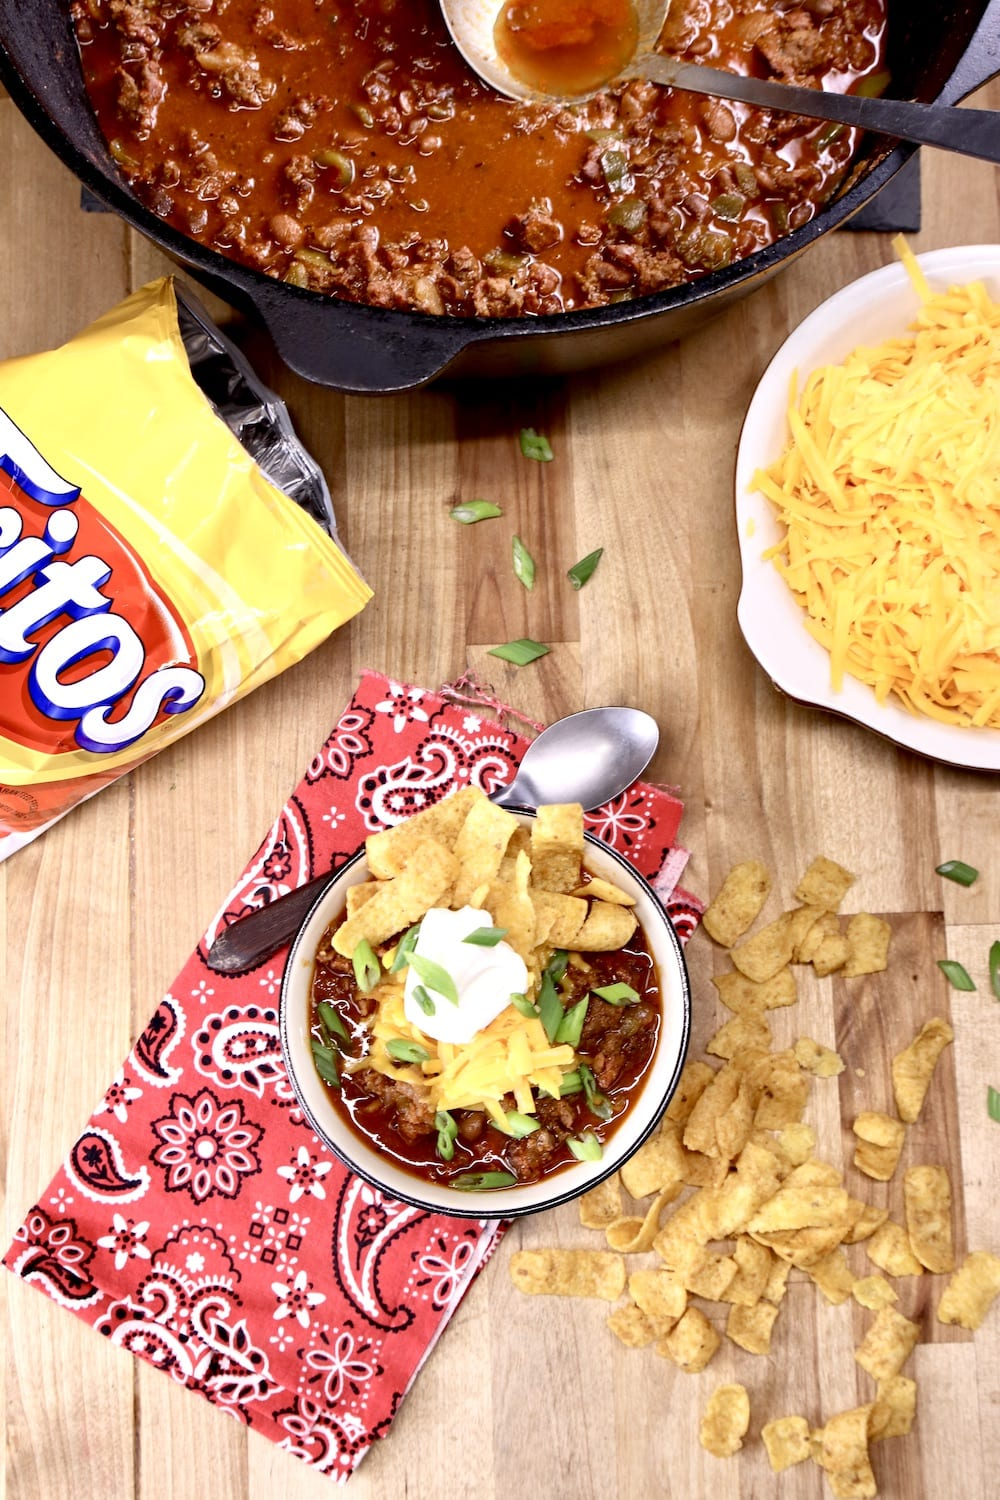 Smoked Chili: dutch oven, bowl topped with cheese, sour cream, Fritos, bag of Fritos, cheese in a bowl